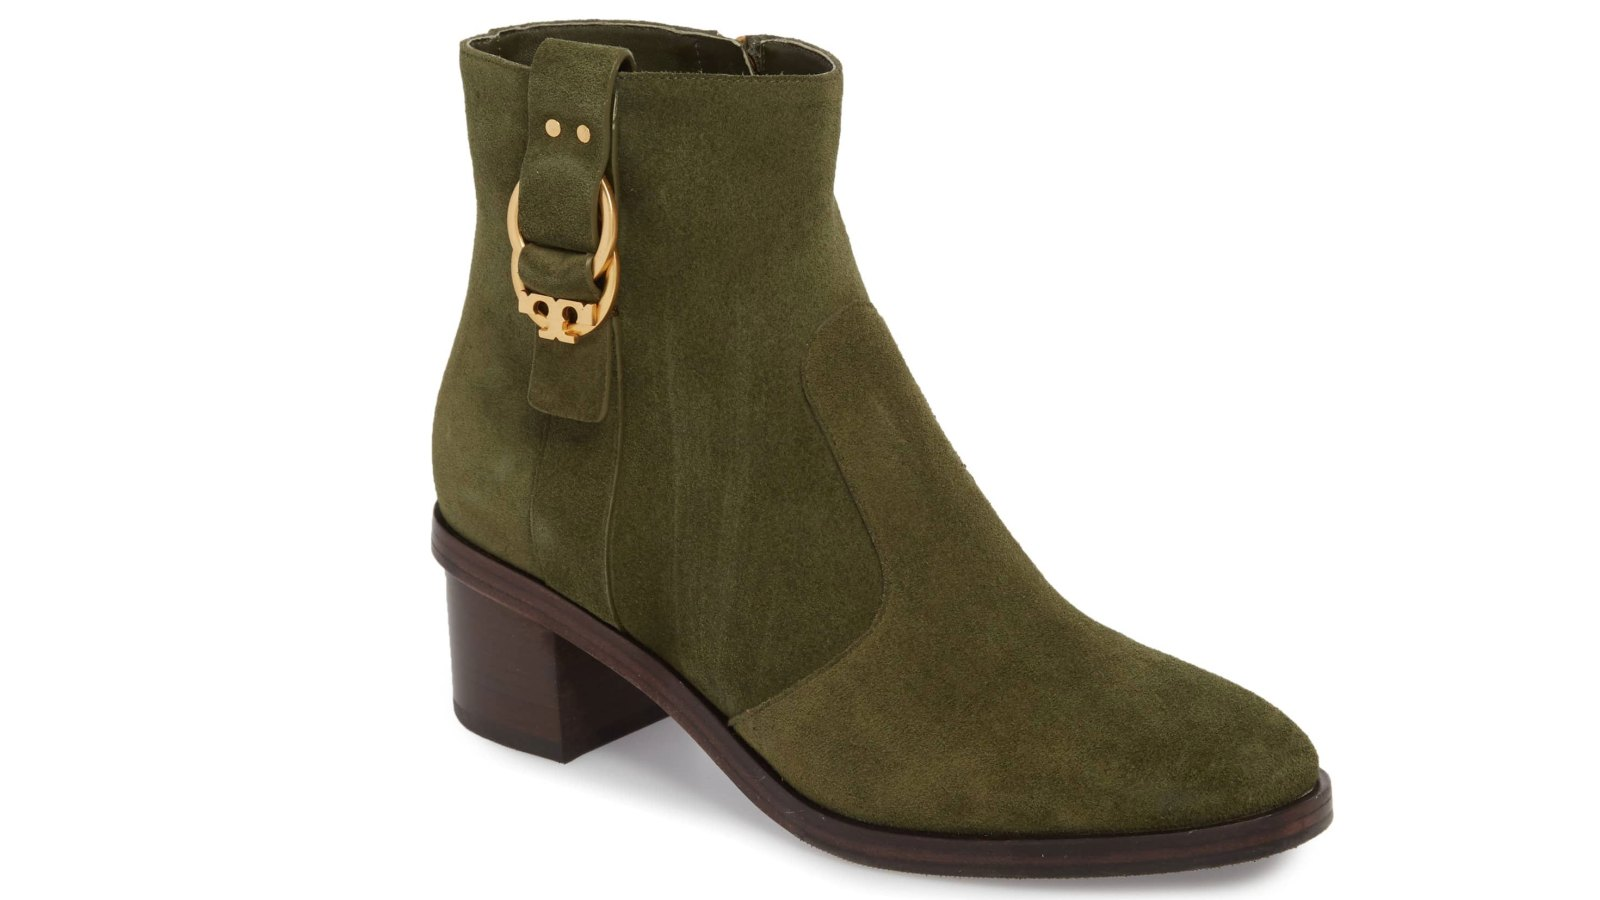 a5c7ae2f845 Step Into Fall With These Gorgeous Tory Burch Booties on Sale at Nordstrom